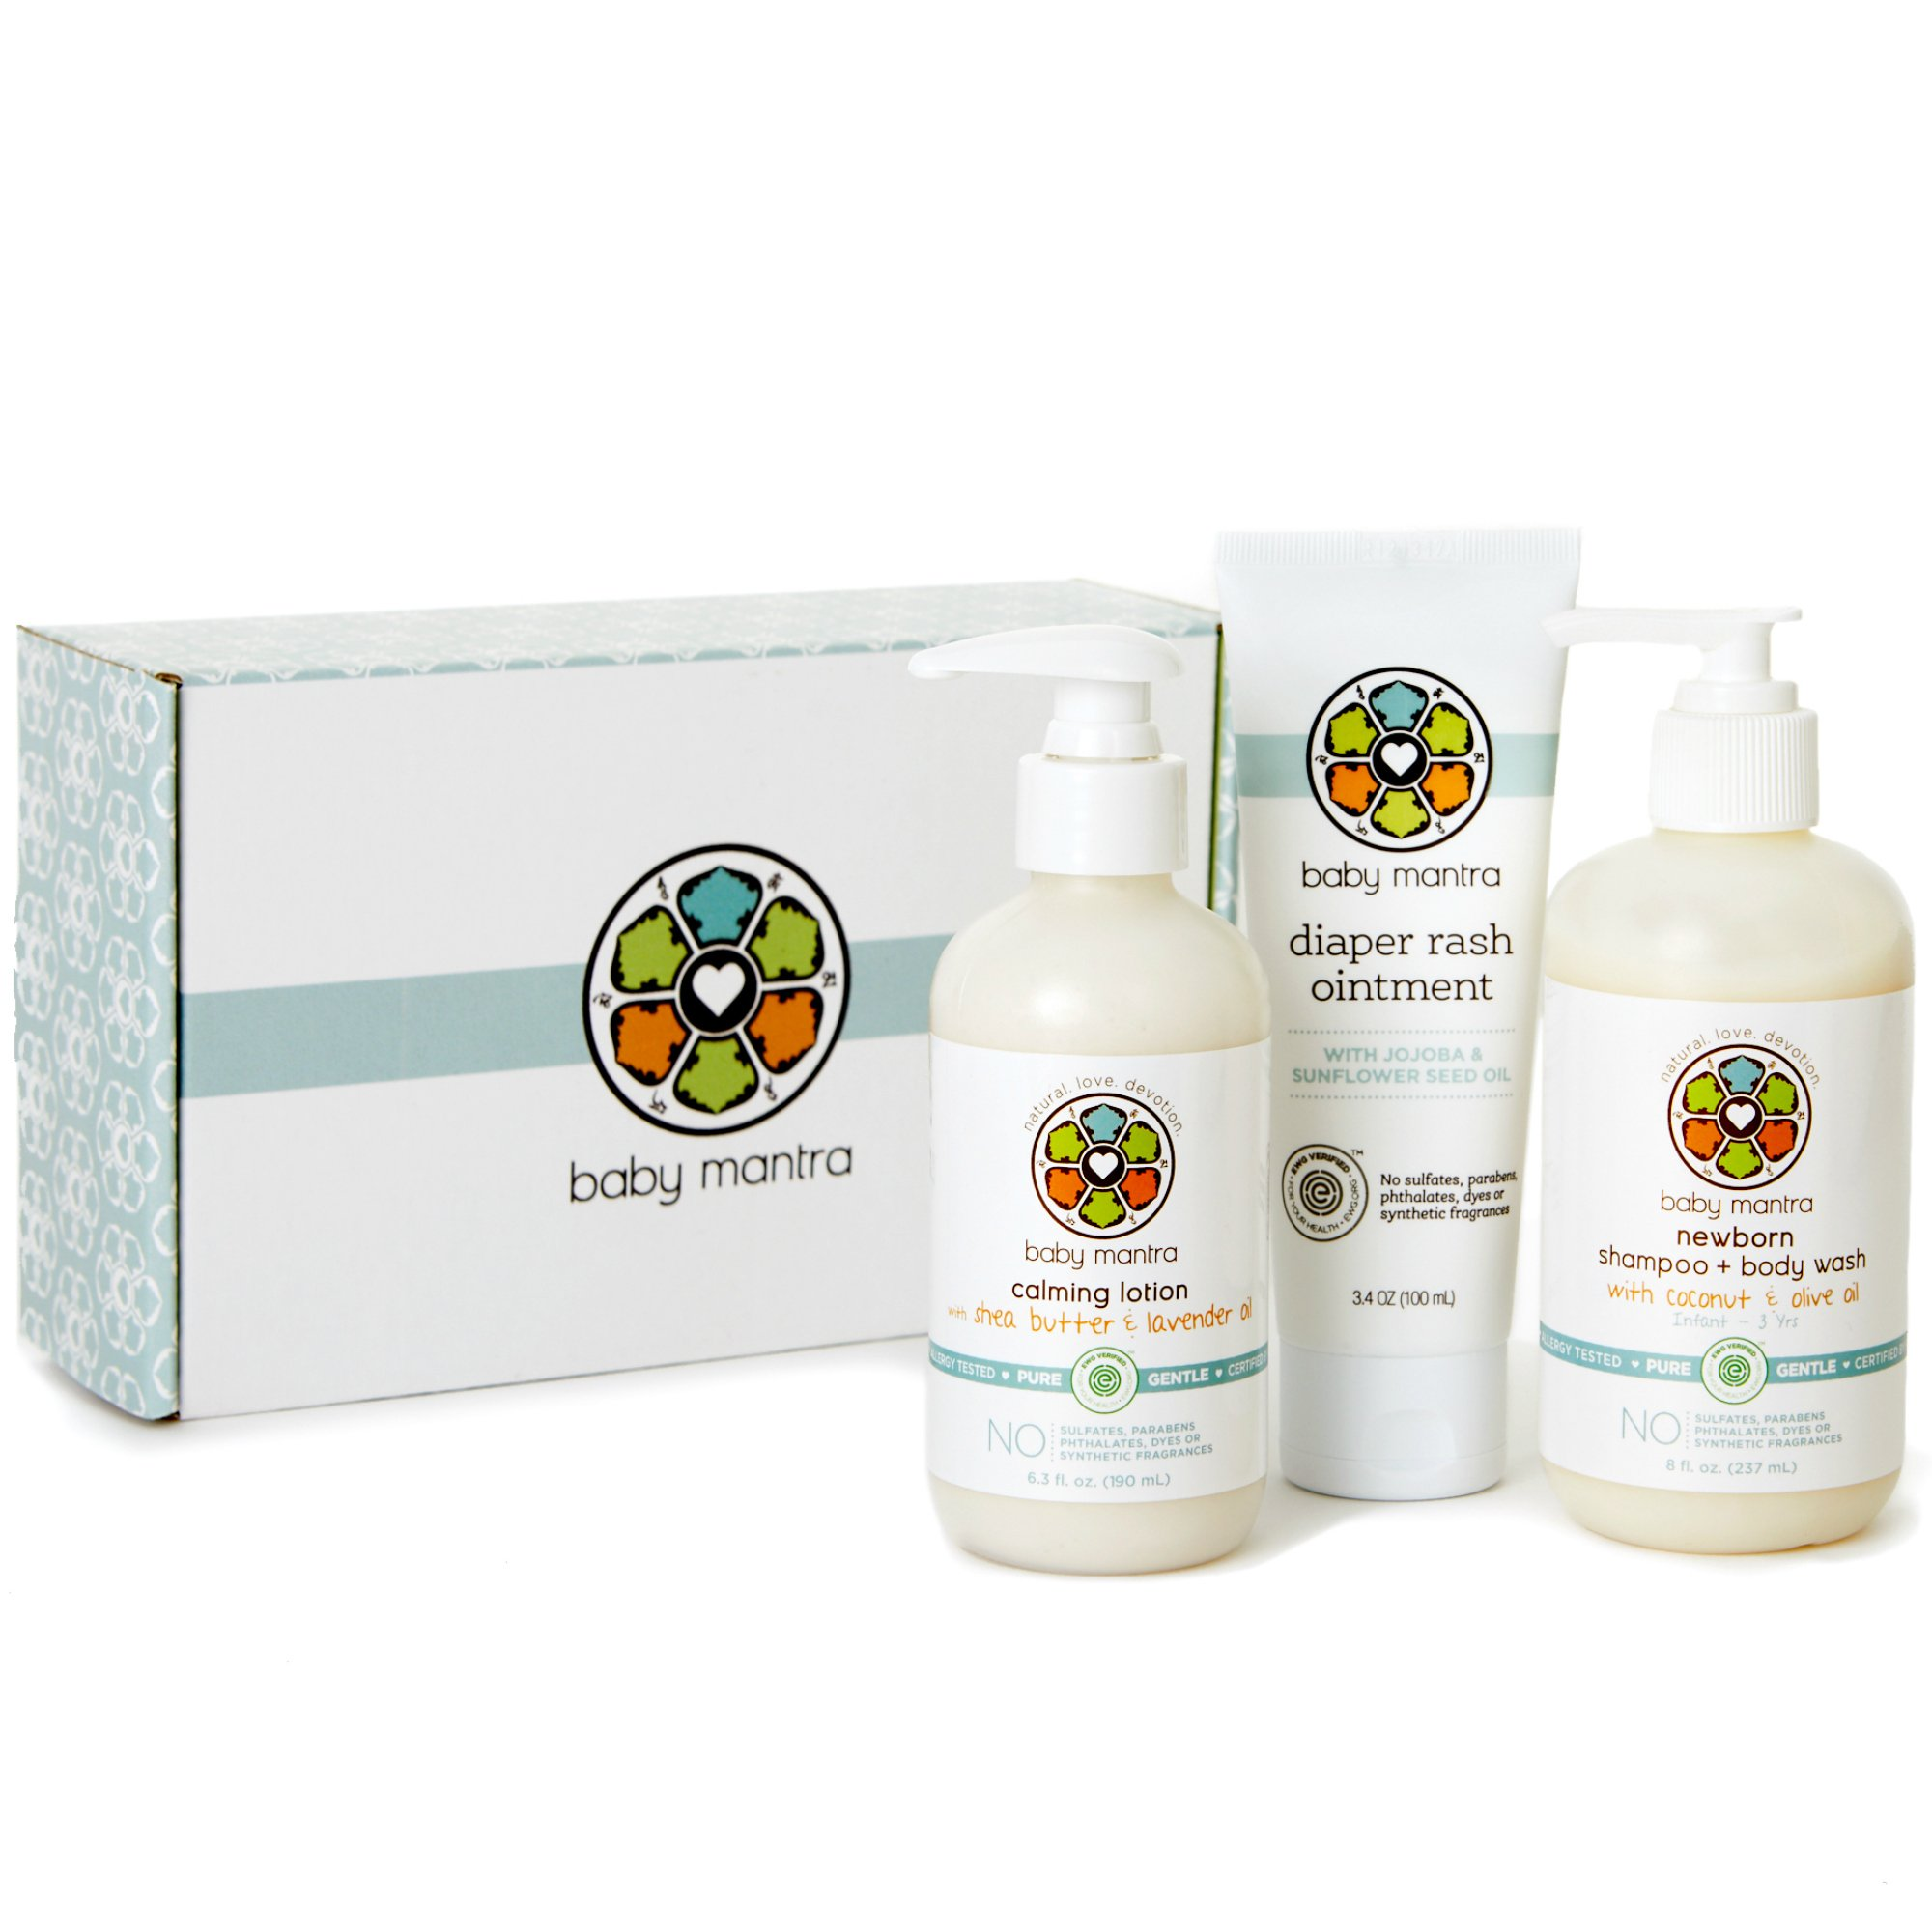 Baby Mantra Newborn Essentials Baby Gift Set, Includes Shampoo and Body Wash, Calming Lotion, and Diaper Rash Ointment, with Natural, Hypoallergenic, EWG Verified Ingredients, Perfect Baby Shower Gift